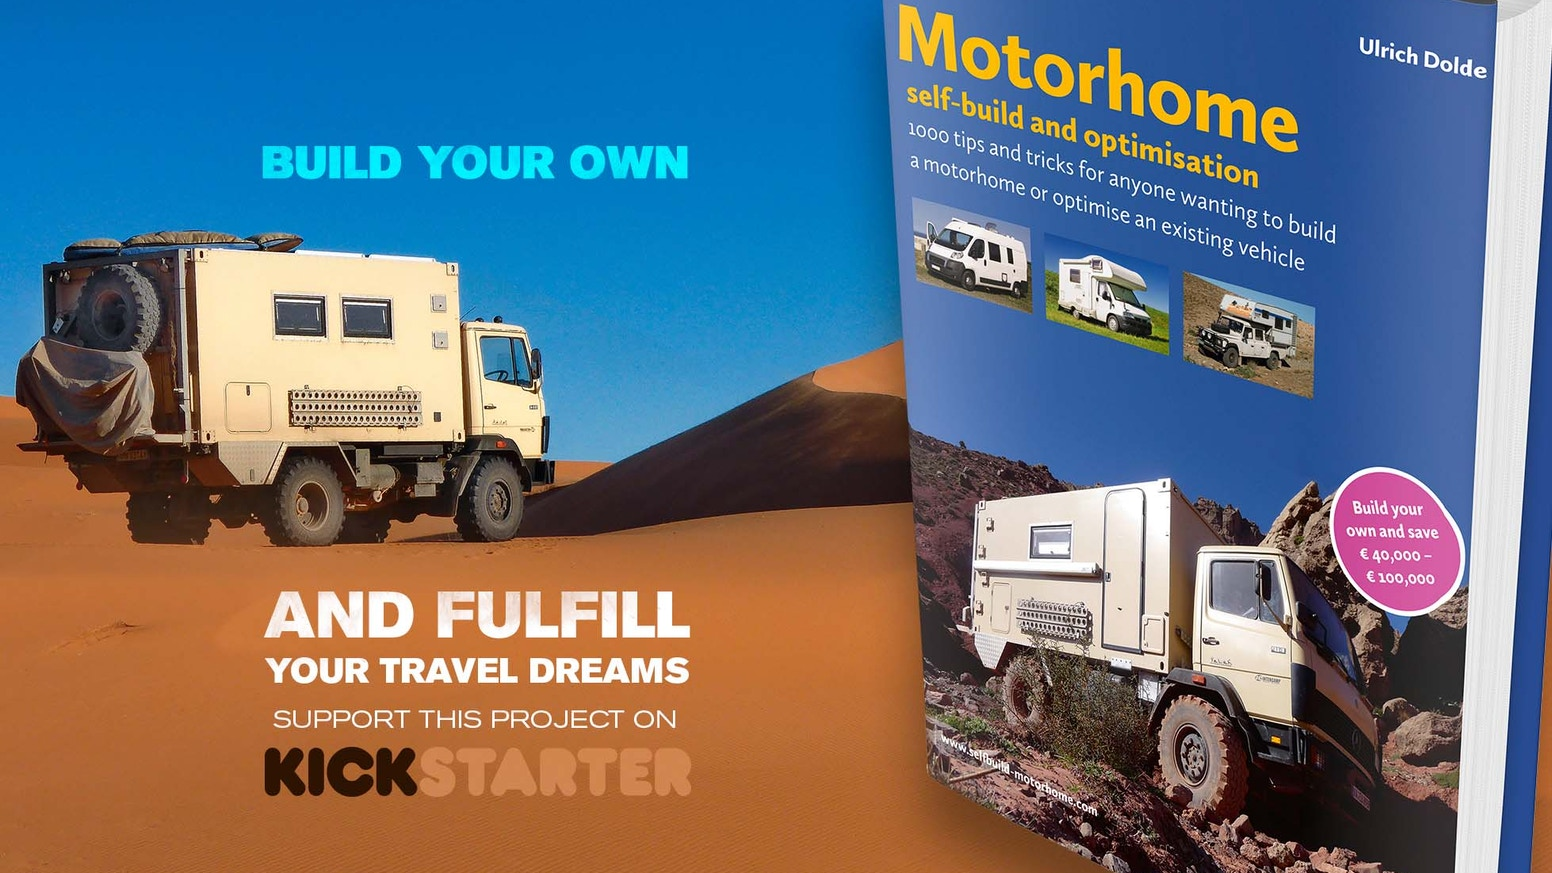 Build Your Own Motorhome Or Rv And Save Up To 100 000